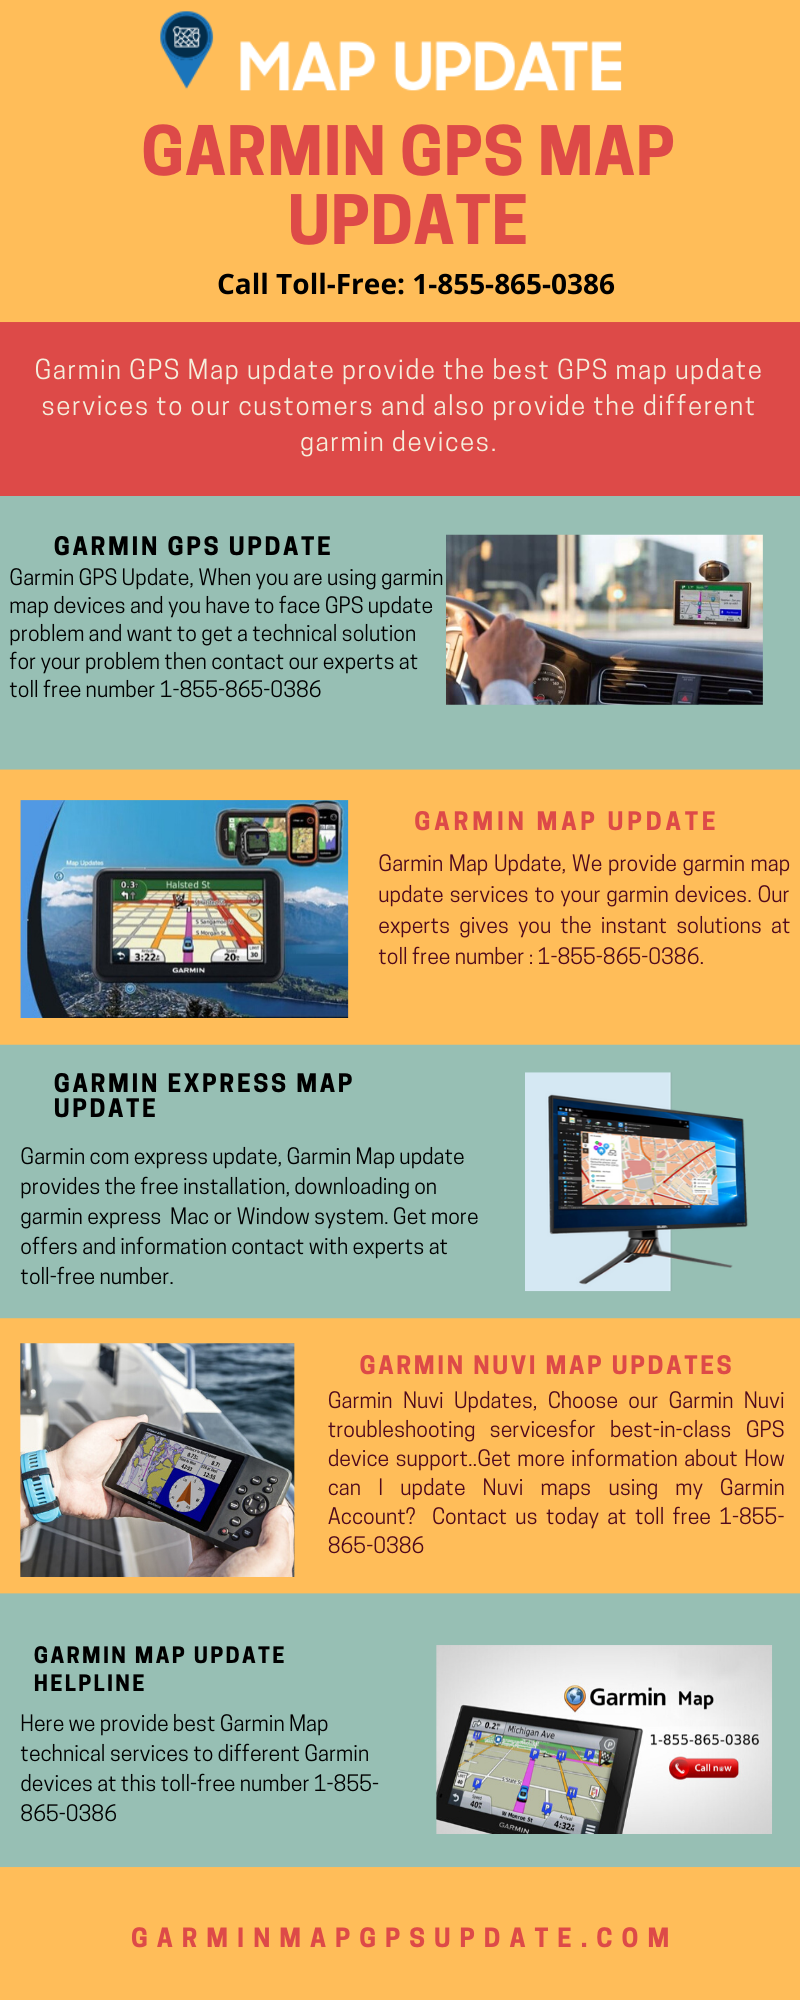 Garmin Canada Map Free Download Garmin GPS Map Update in 2020 | Gps map, Garmin gps maps, Garmin gps